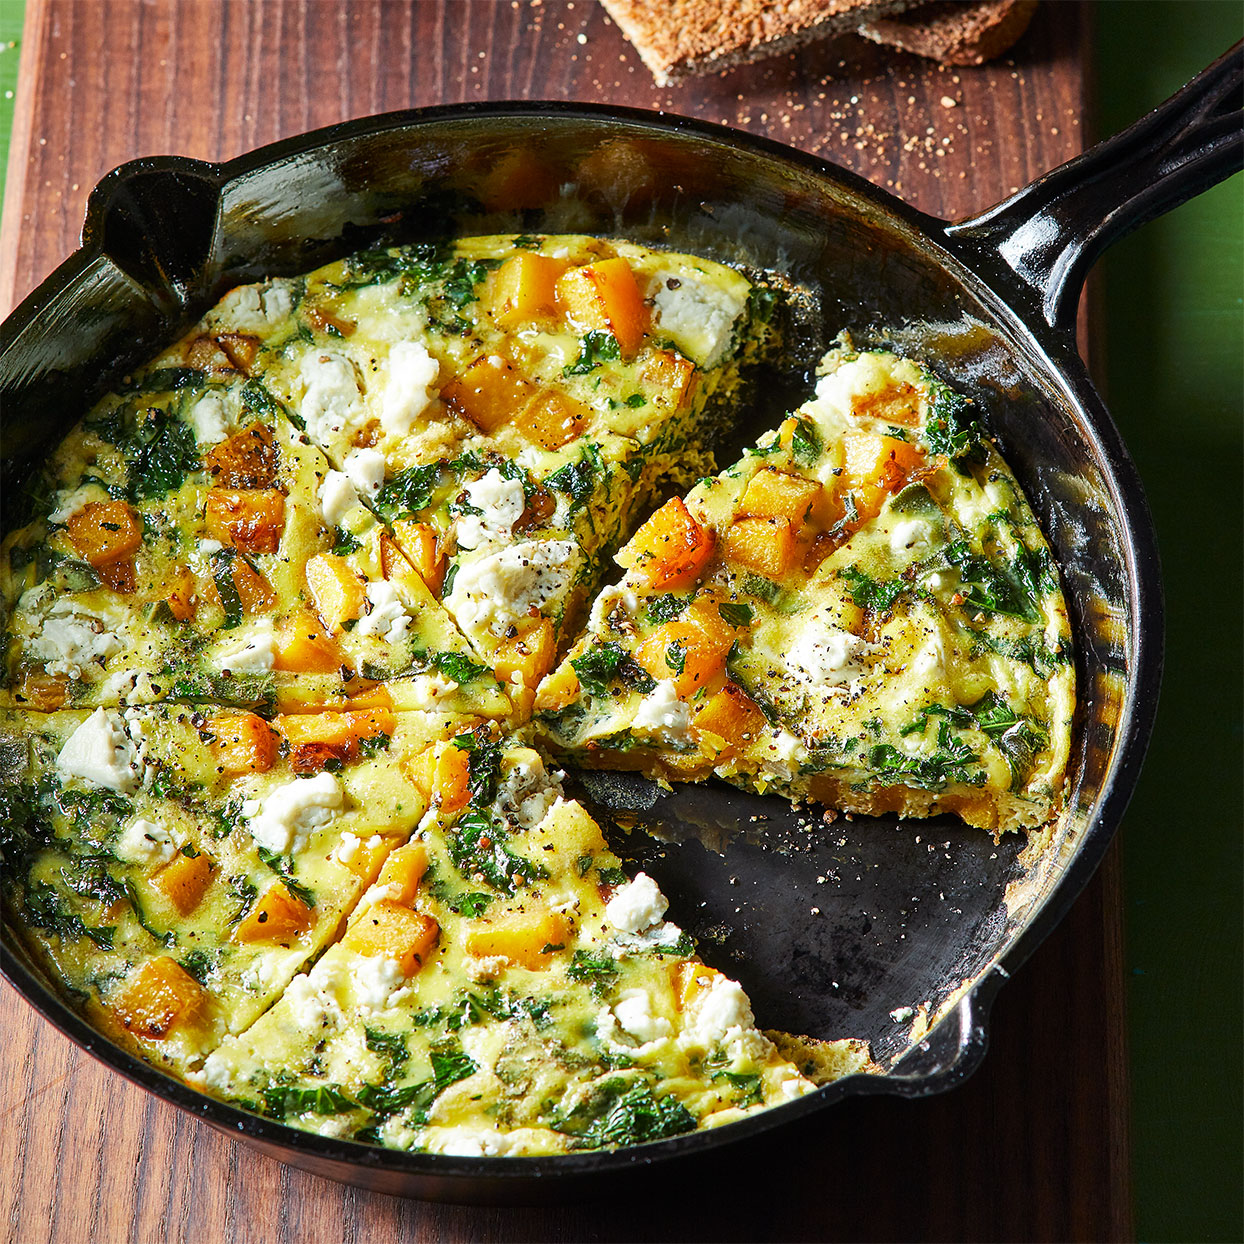 This easy frittata recipe is full of fall flavors, thanks to creamy butternut squash, plenty of fresh sage, and earthy lacinato kale. Source: Diabetic Living Magazine, Fall 2020